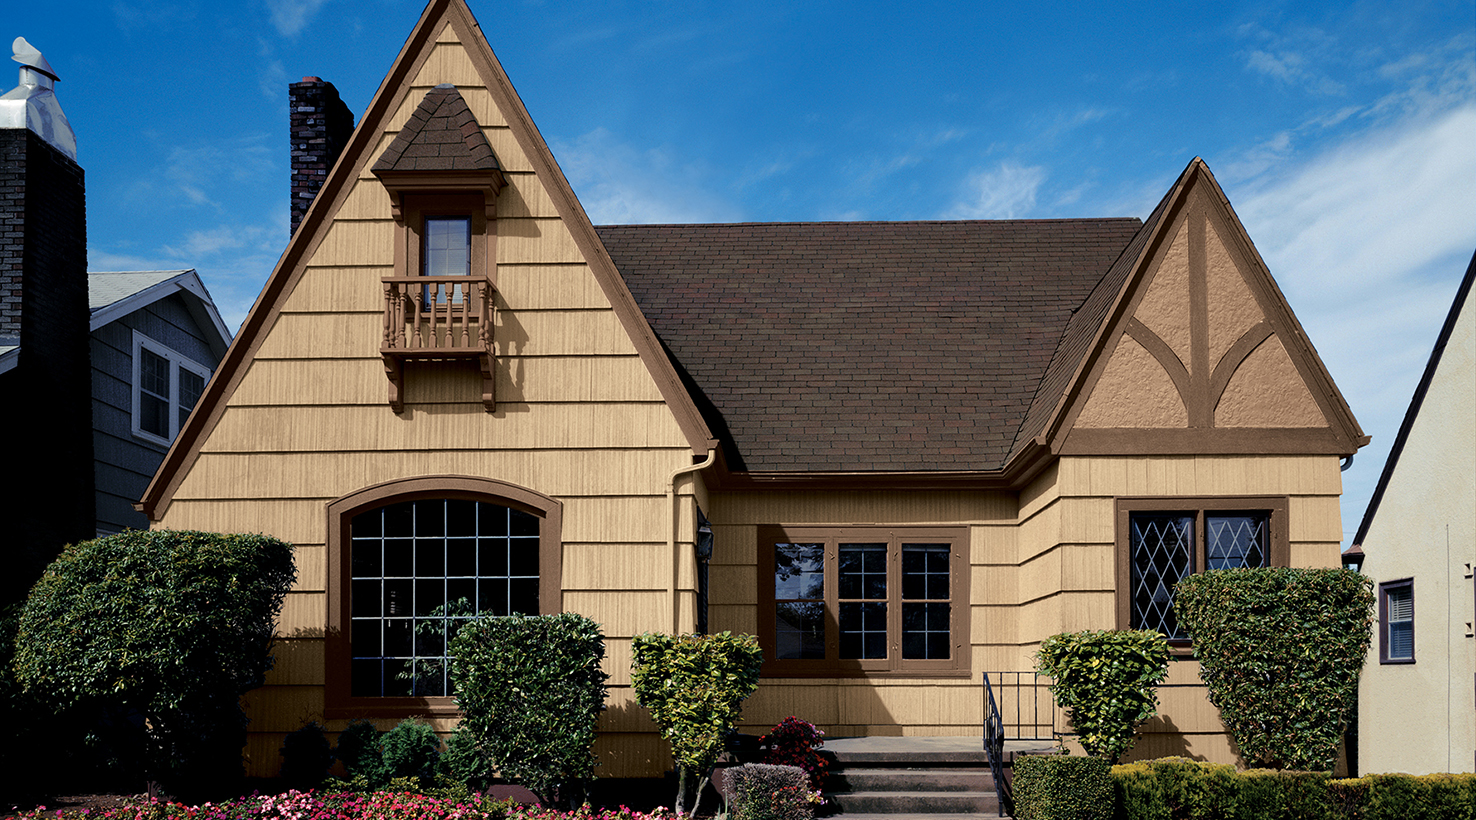 Exterior house color inspiration sherwin williams for Sherwin williams exterior paint color visualizer